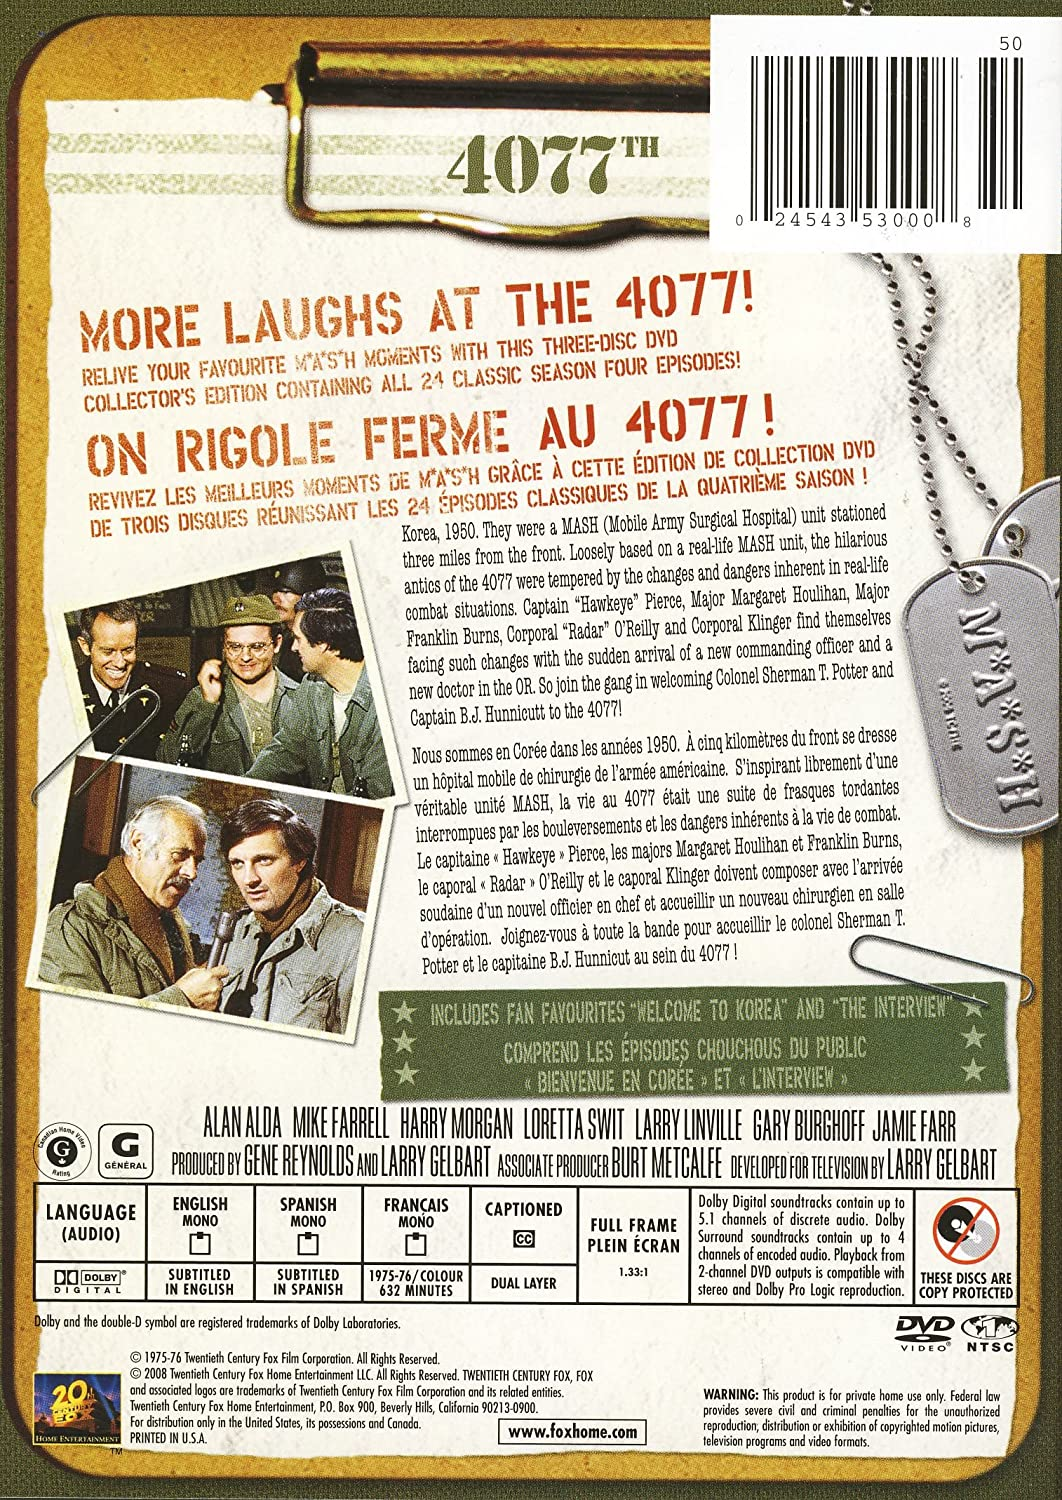 Amazon.com: M*A*S*H: Season 4: Alan Alda, Loretta Swit, Jamie Farr, William Christopher, Harry Morgan: Movies & TV